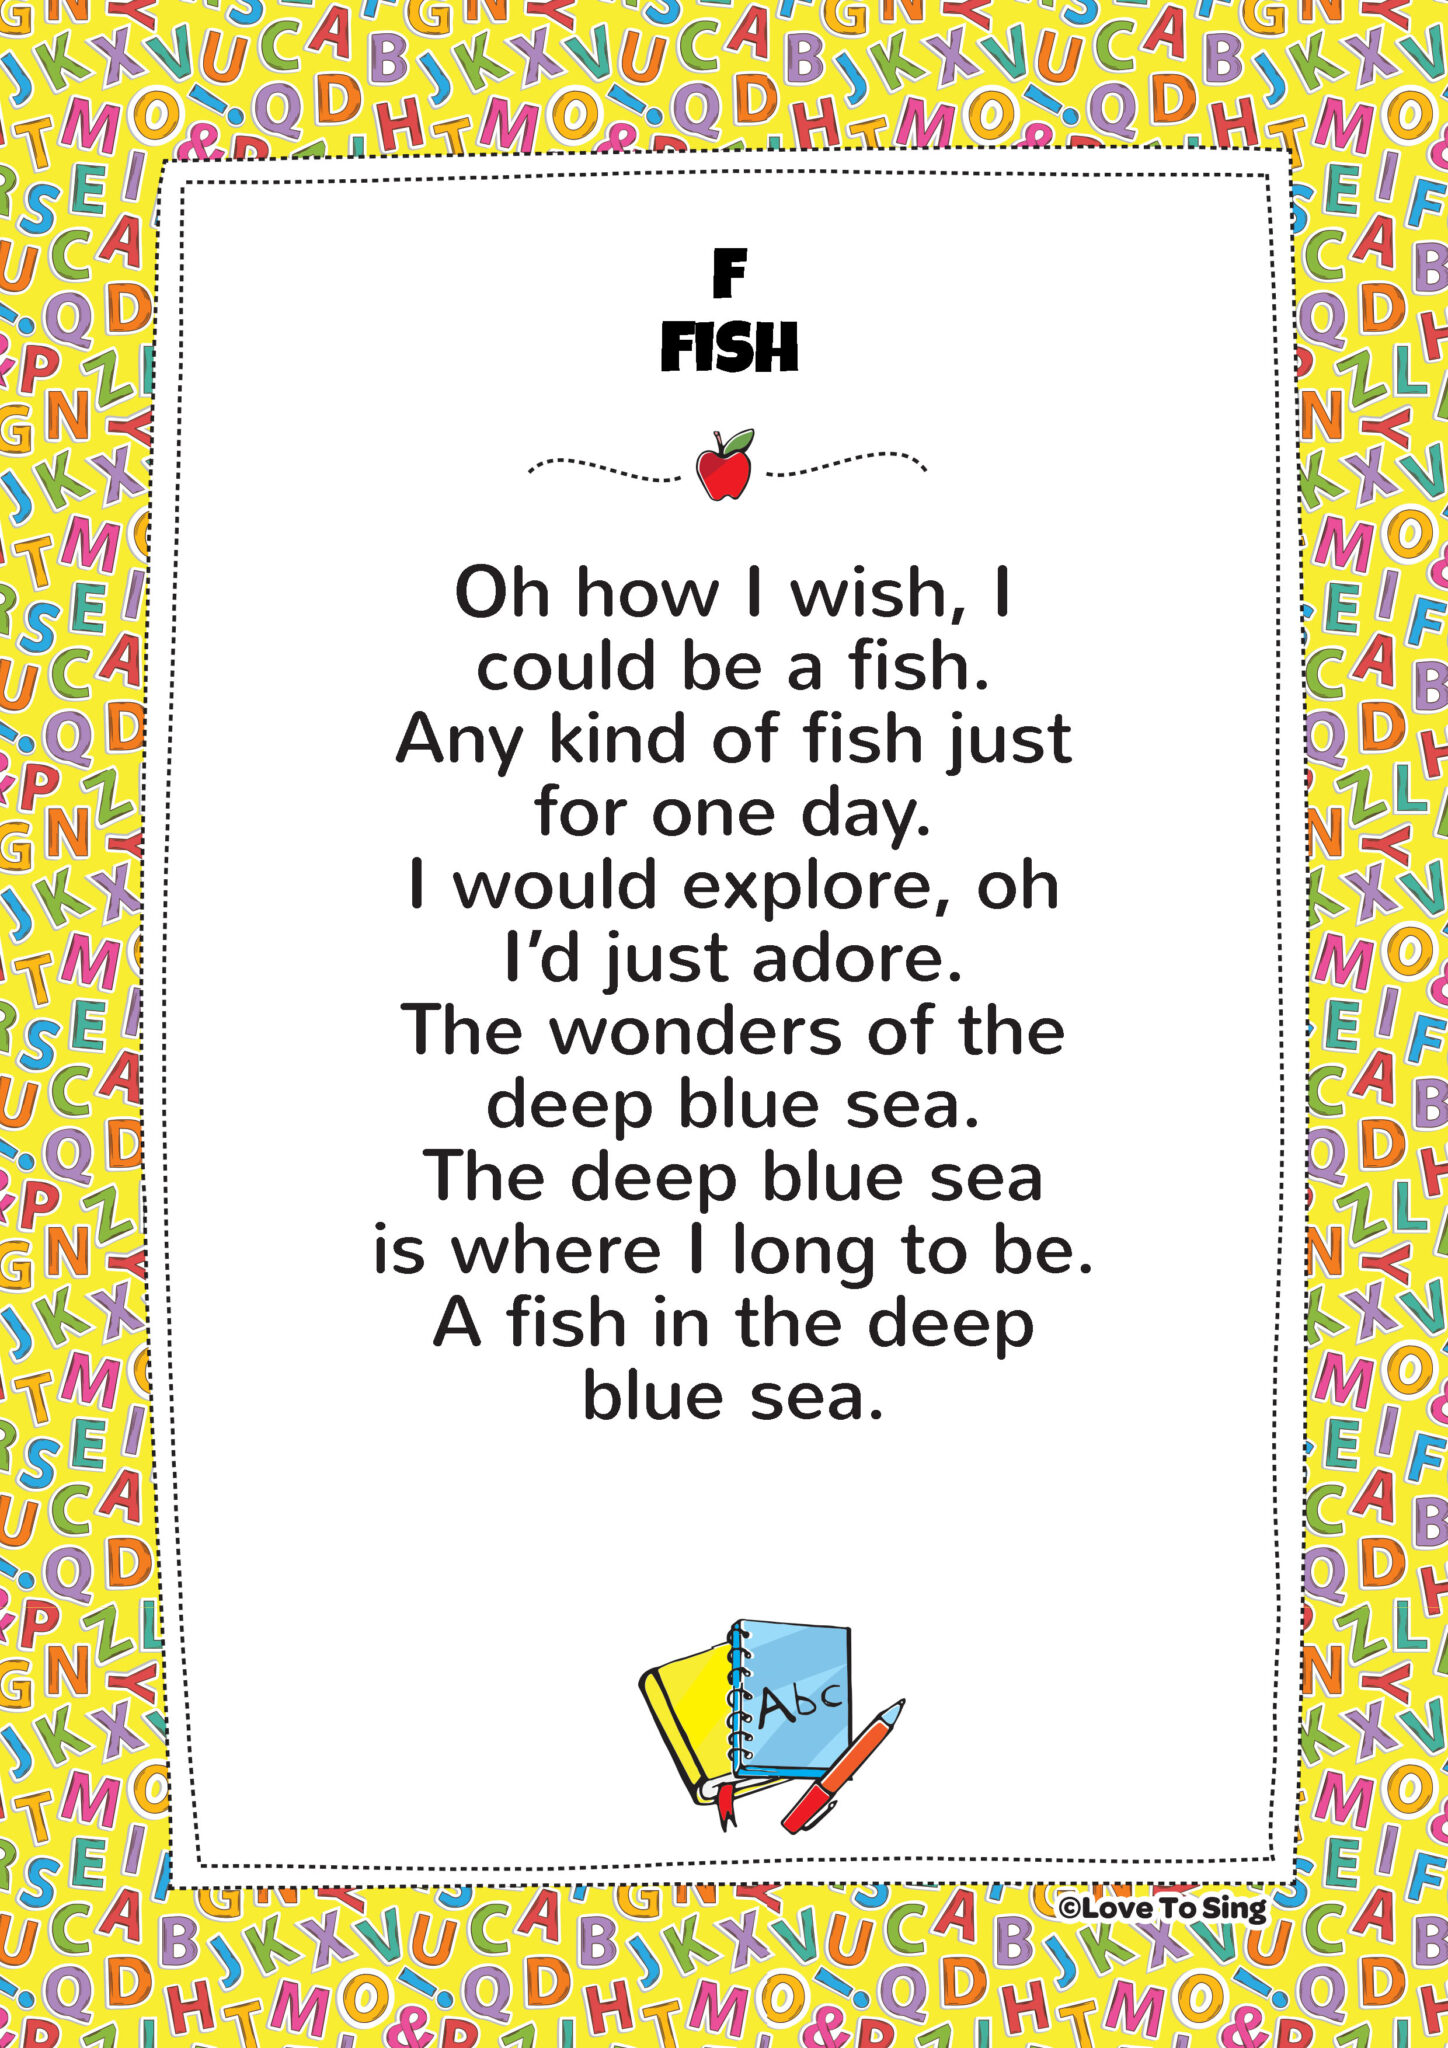 F fish phonics song free video song lyrics activities for Fish songs for preschoolers